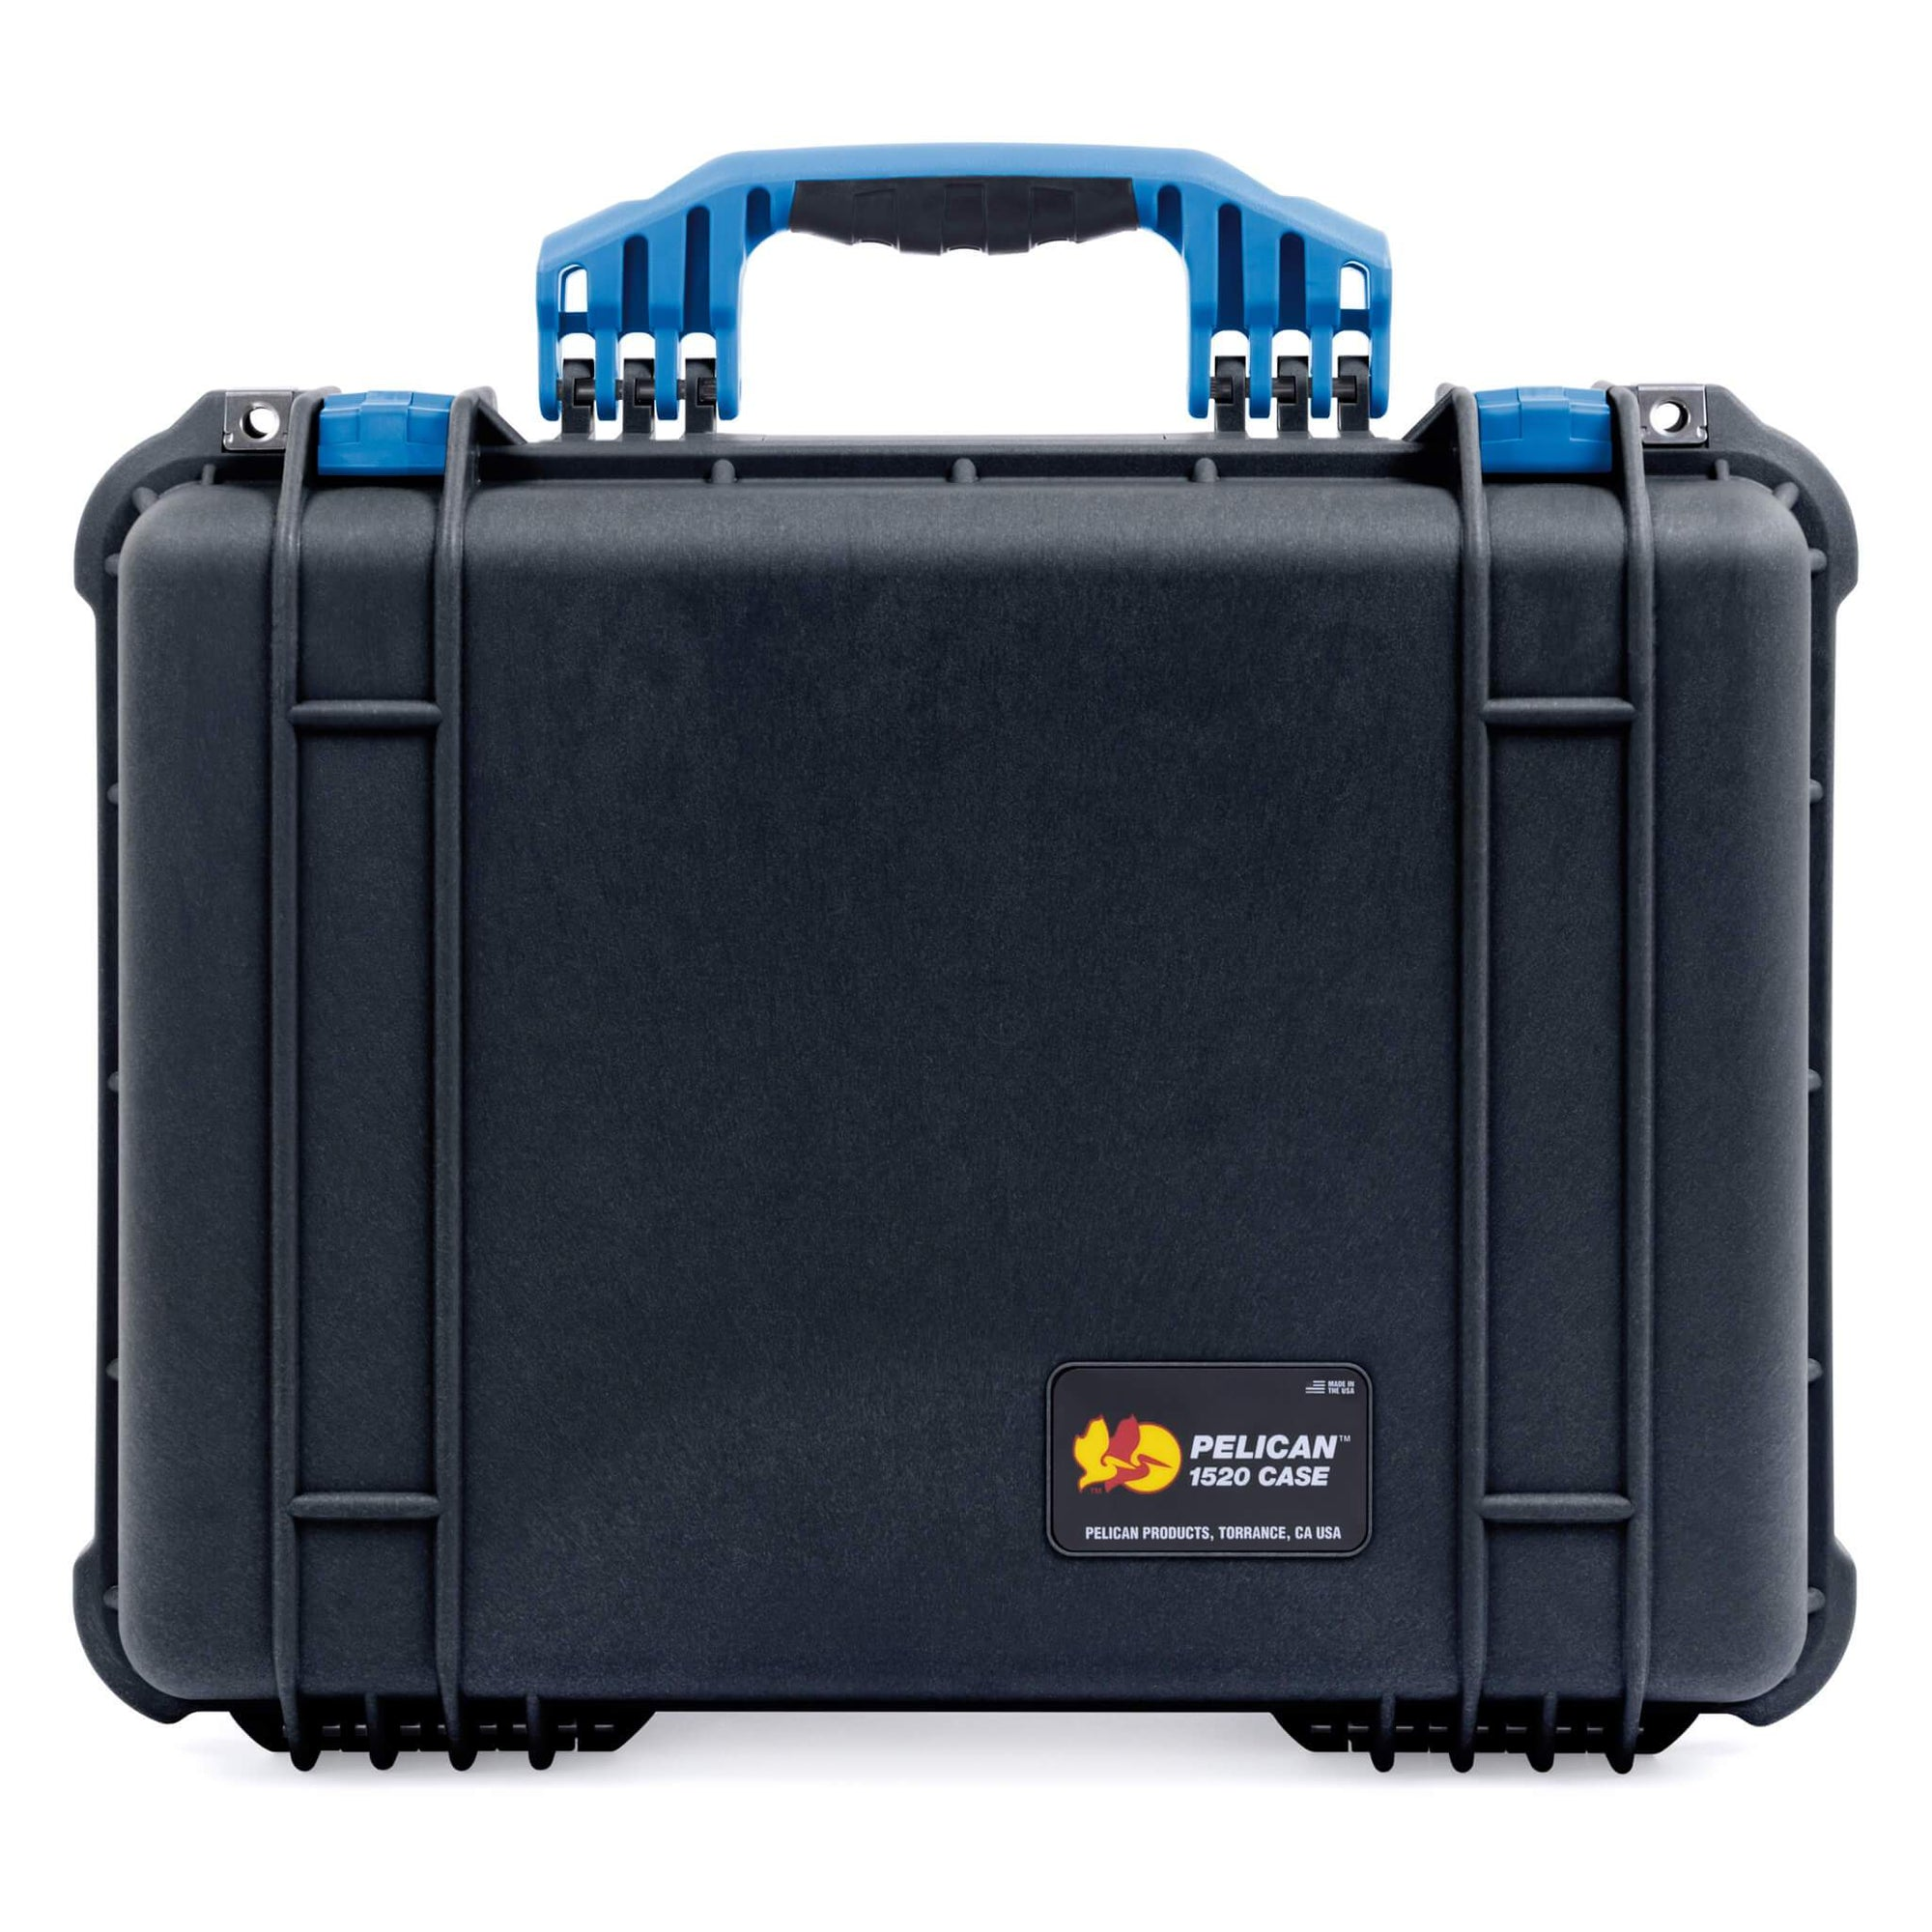 Pelican 1520 Case, Black with Blue Handle & Latches